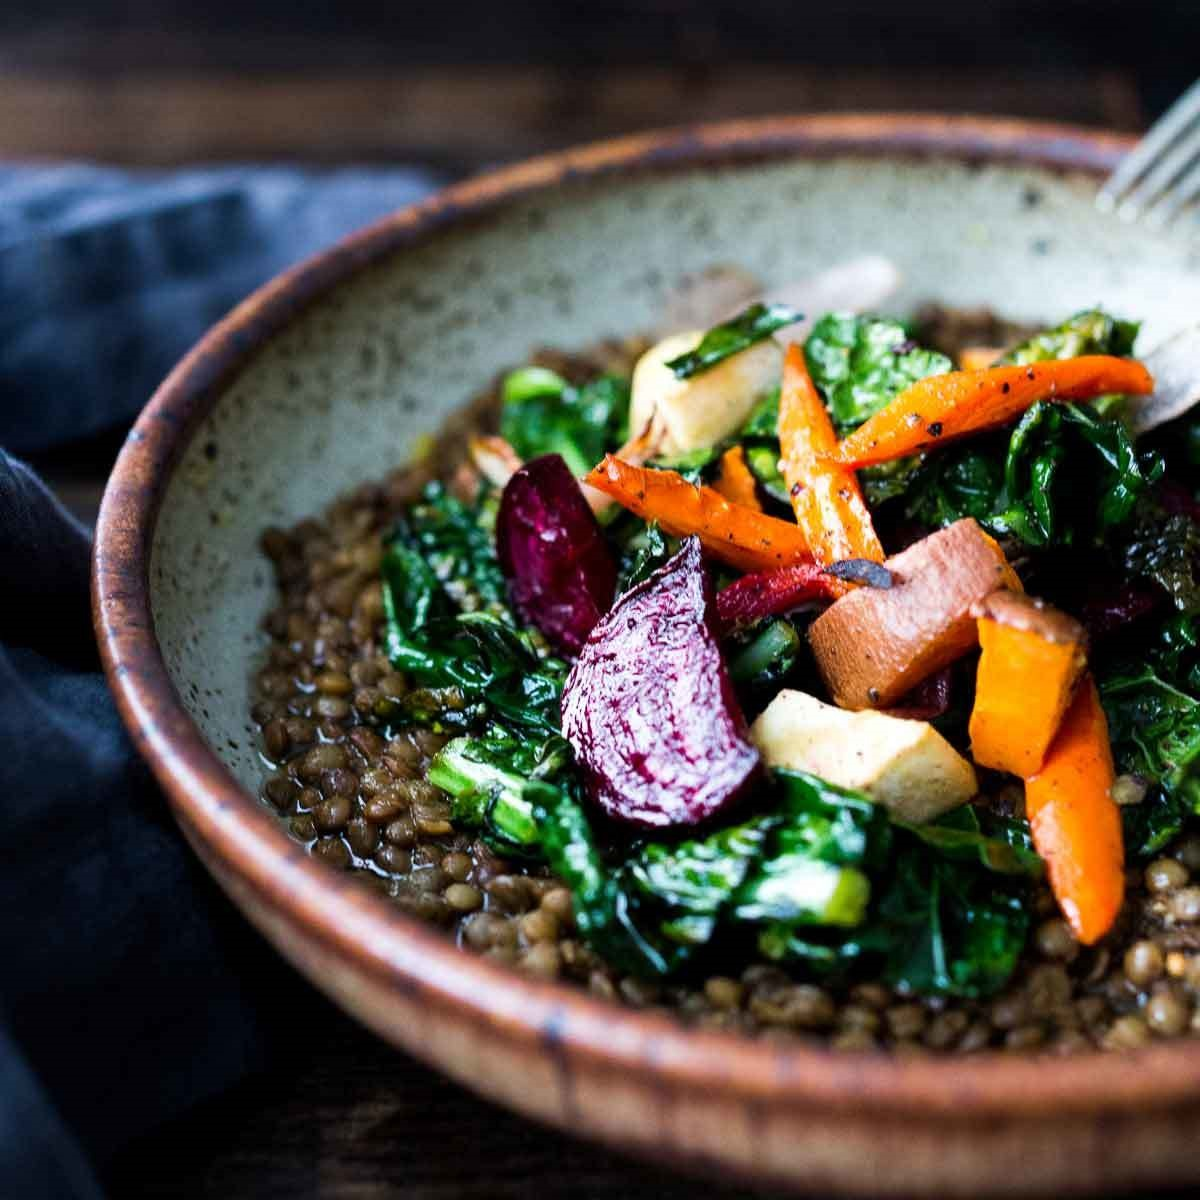 Roasted Root Veggies & Greens over Spiced Lentils Sylvia Fountaine